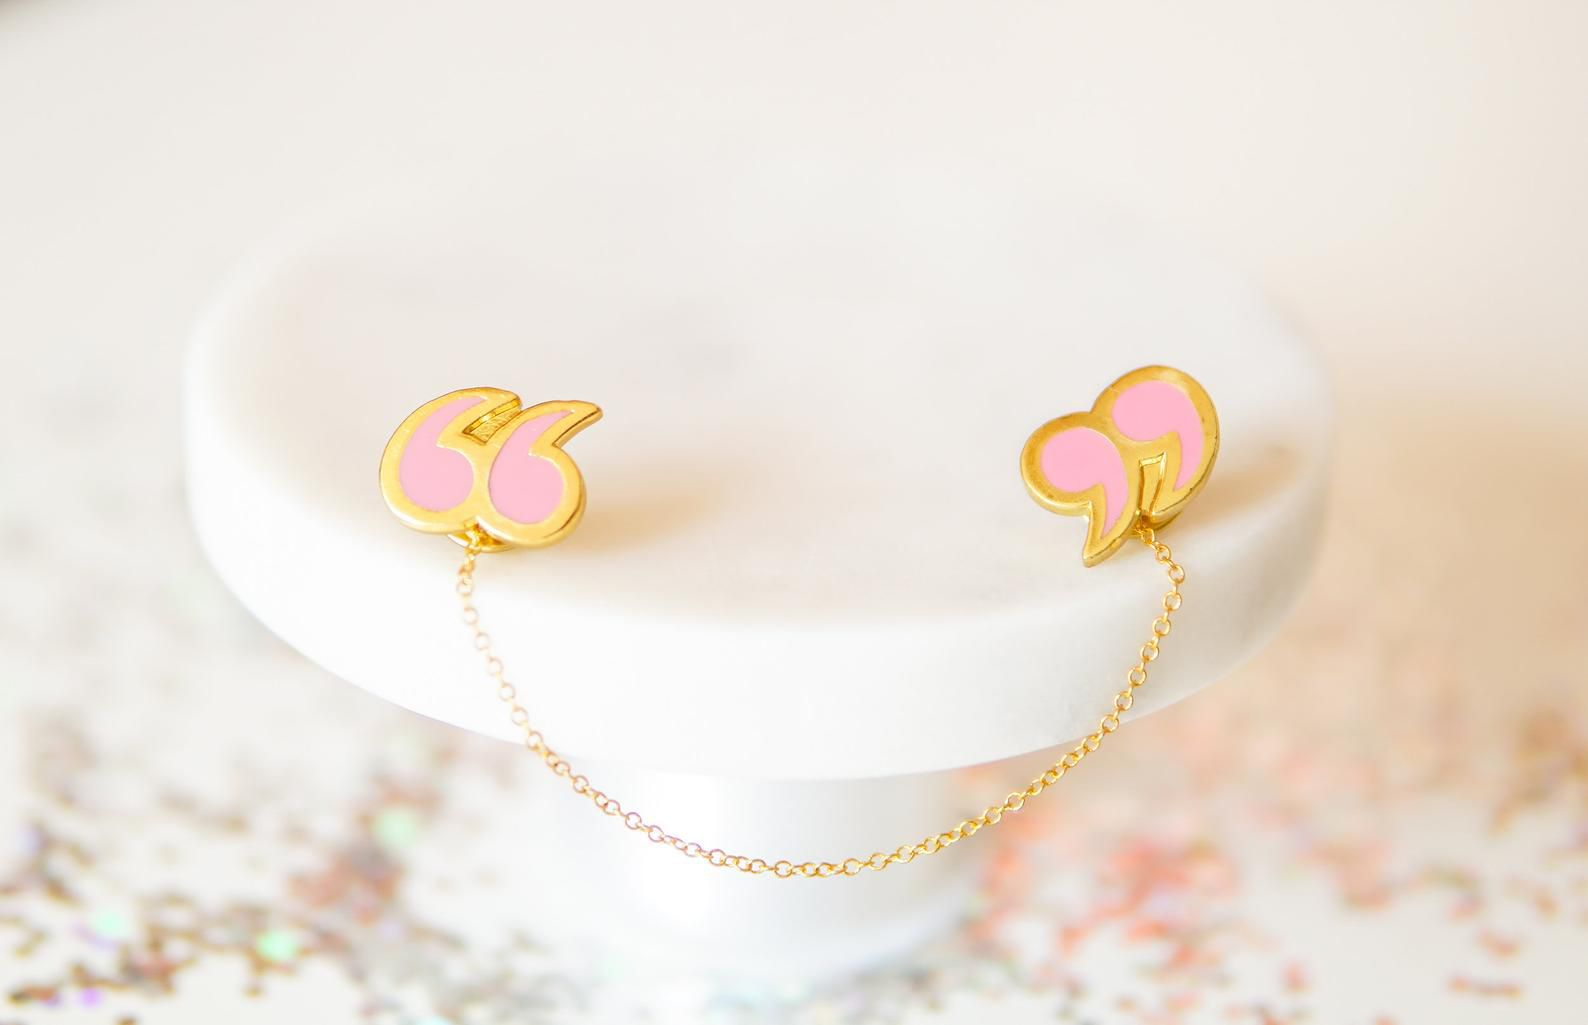 Two pink and gold quotation mark pins, linked by a gold chain. They are resting on a white stand.